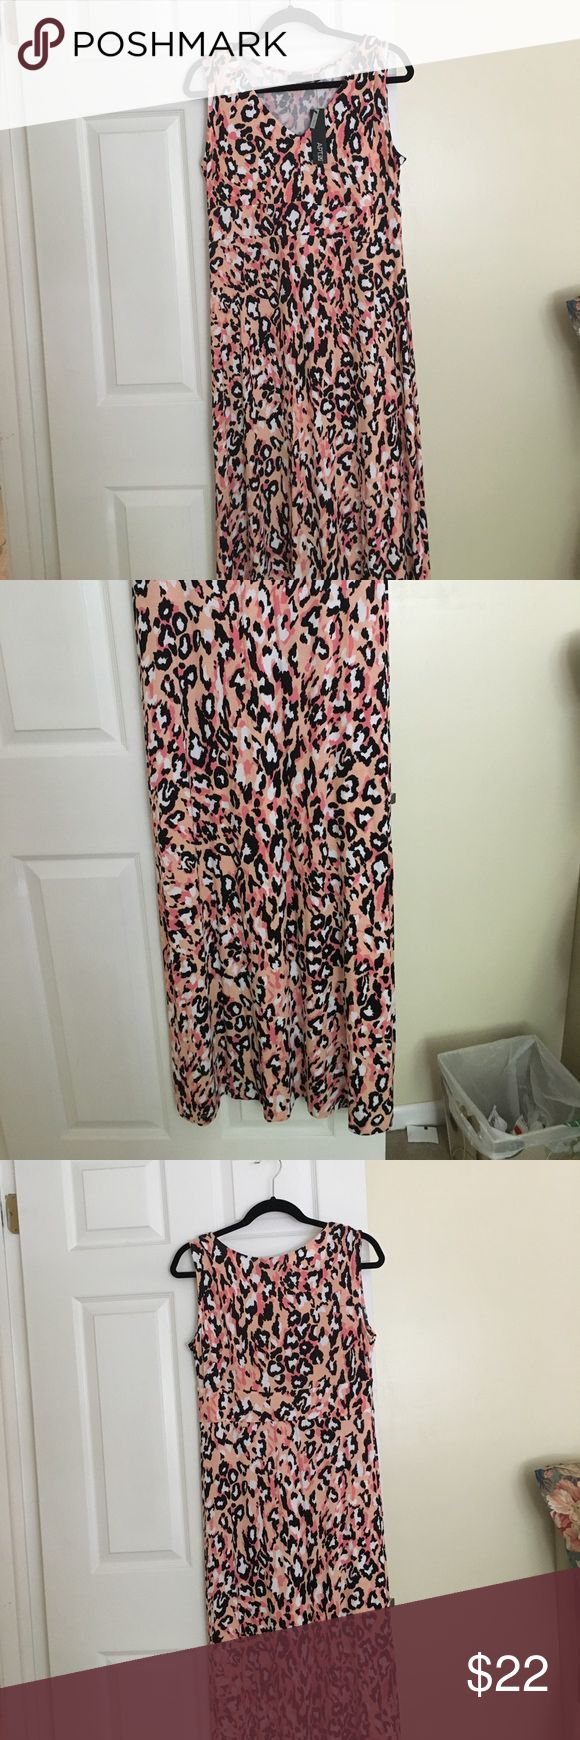 """New APT.9 dress. Black/Coral leopard Maxi dress XL It has a """"V"""" neck. Flare bottom. Large petite.  It's accented with Blk/white/coral design. Apt. 9 Dresses Maxi"""